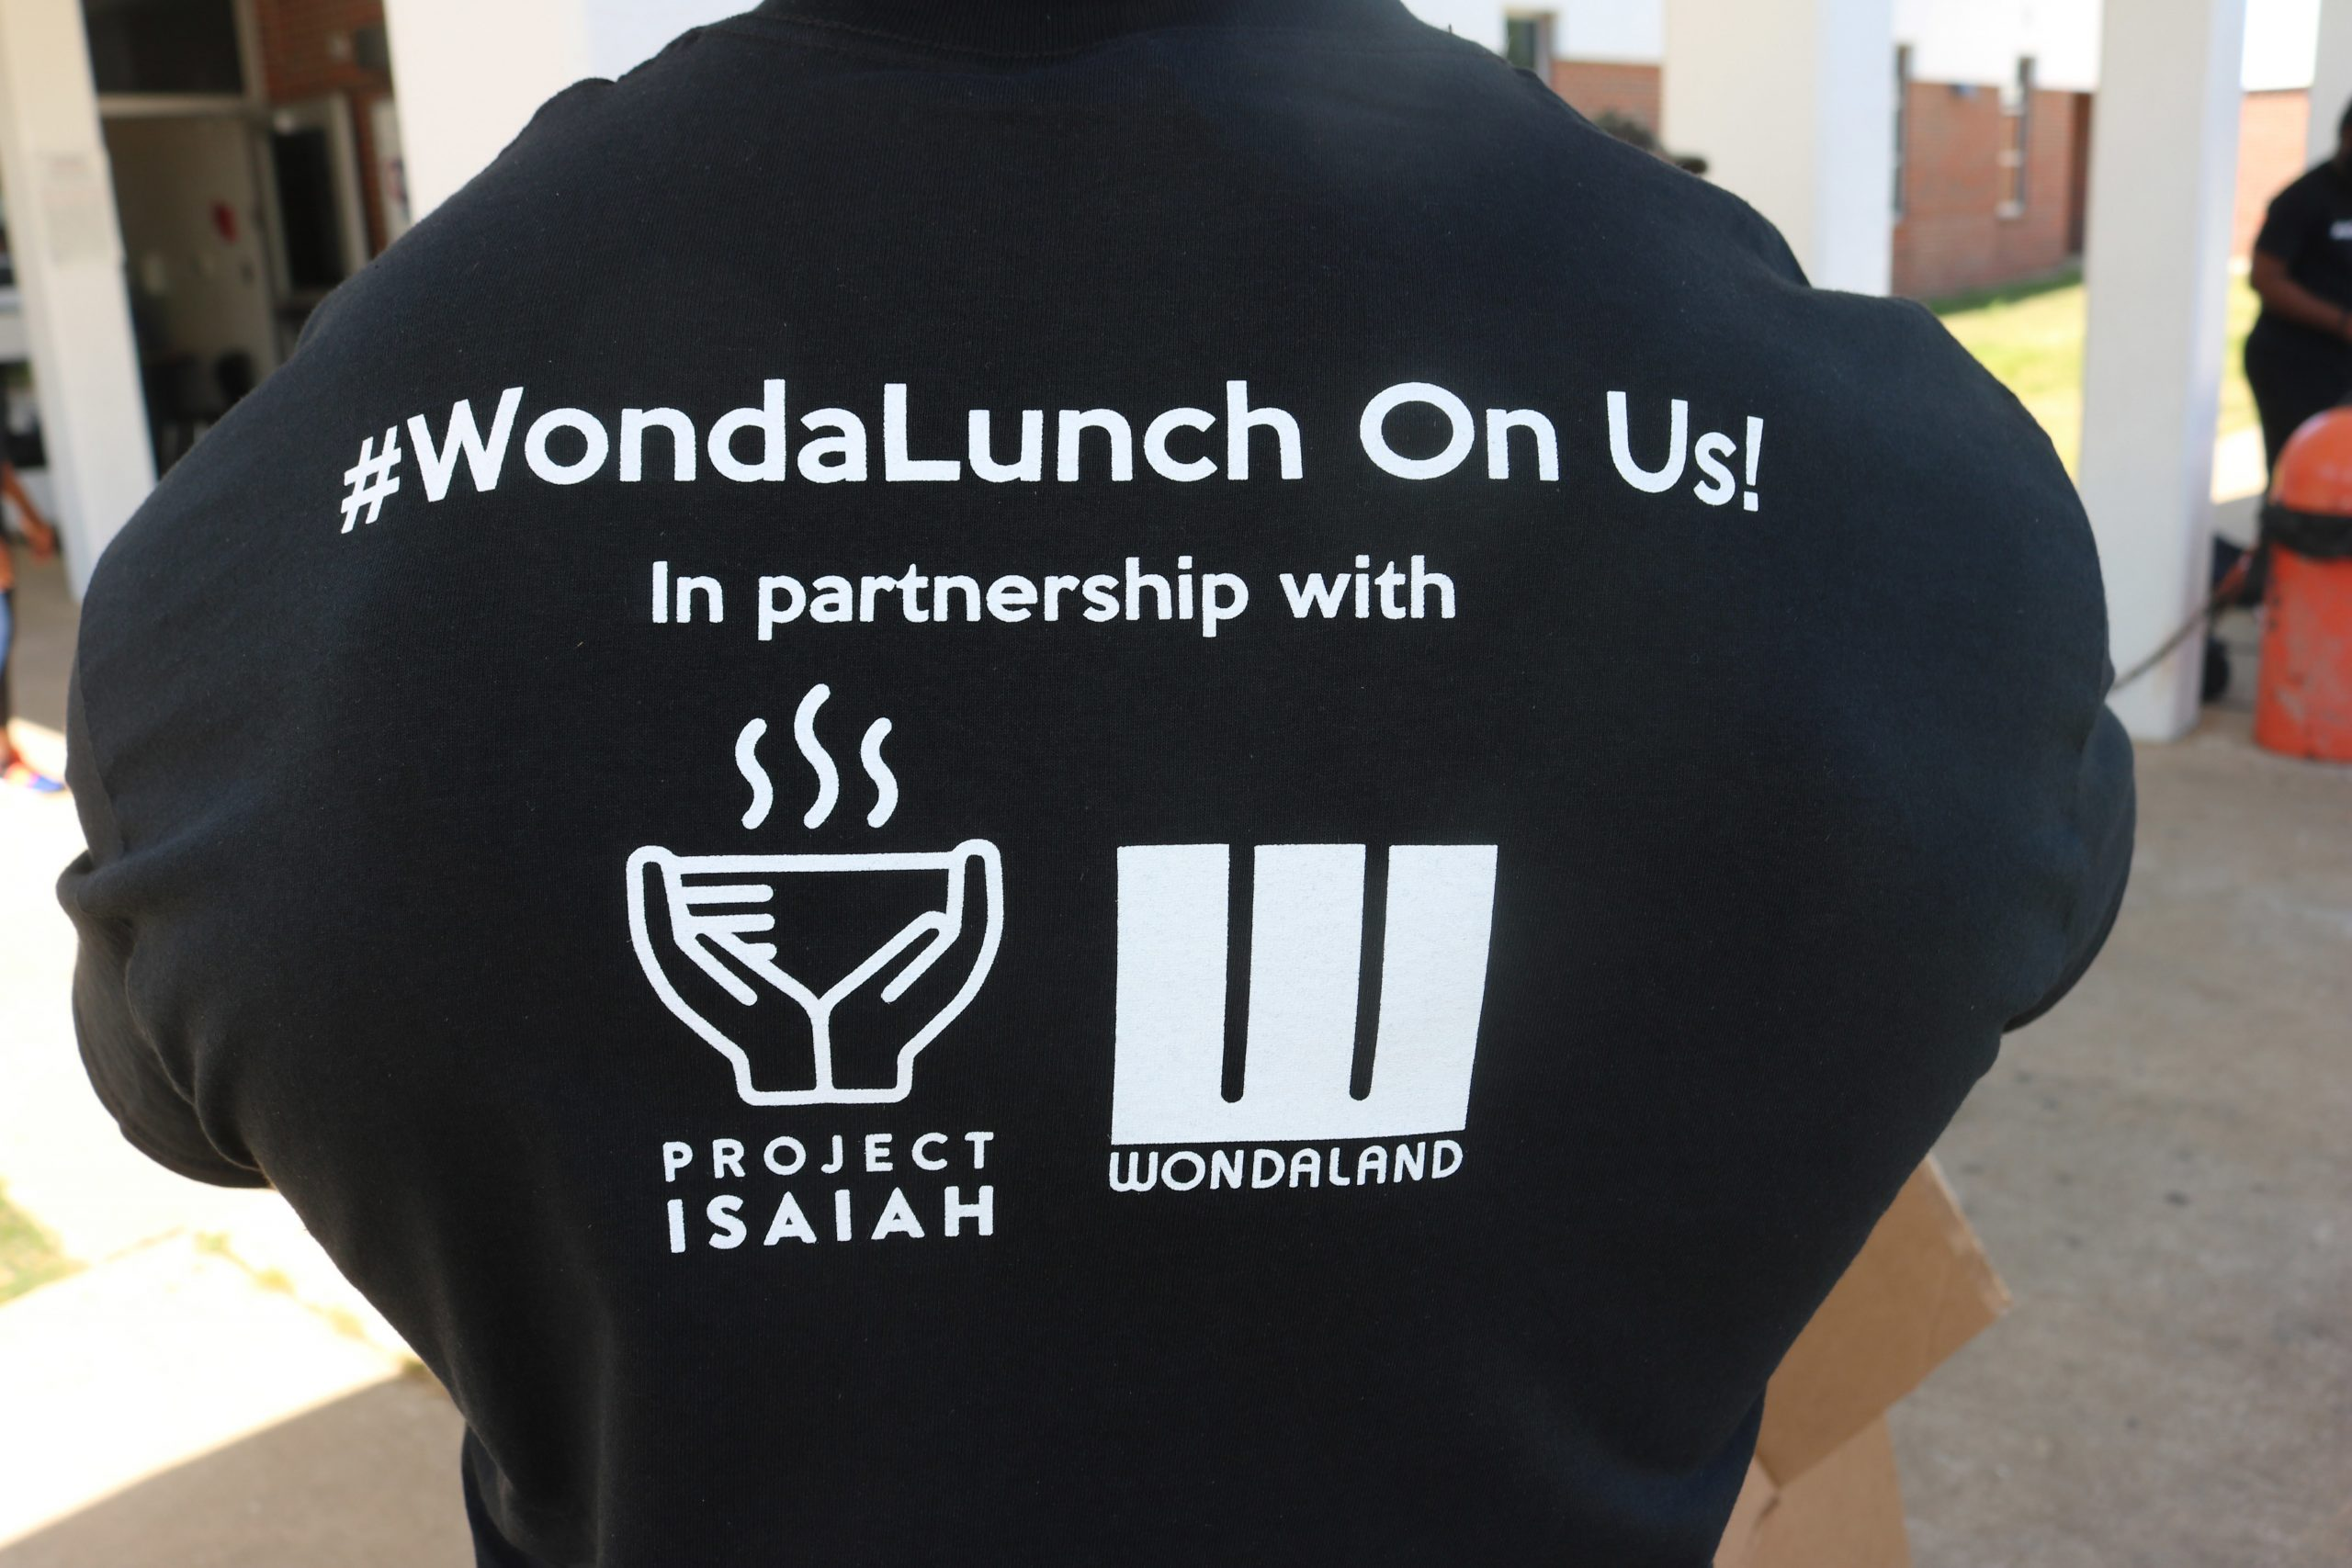 #WondaLunch distributes 1,000 meals to College Park families thumbnail